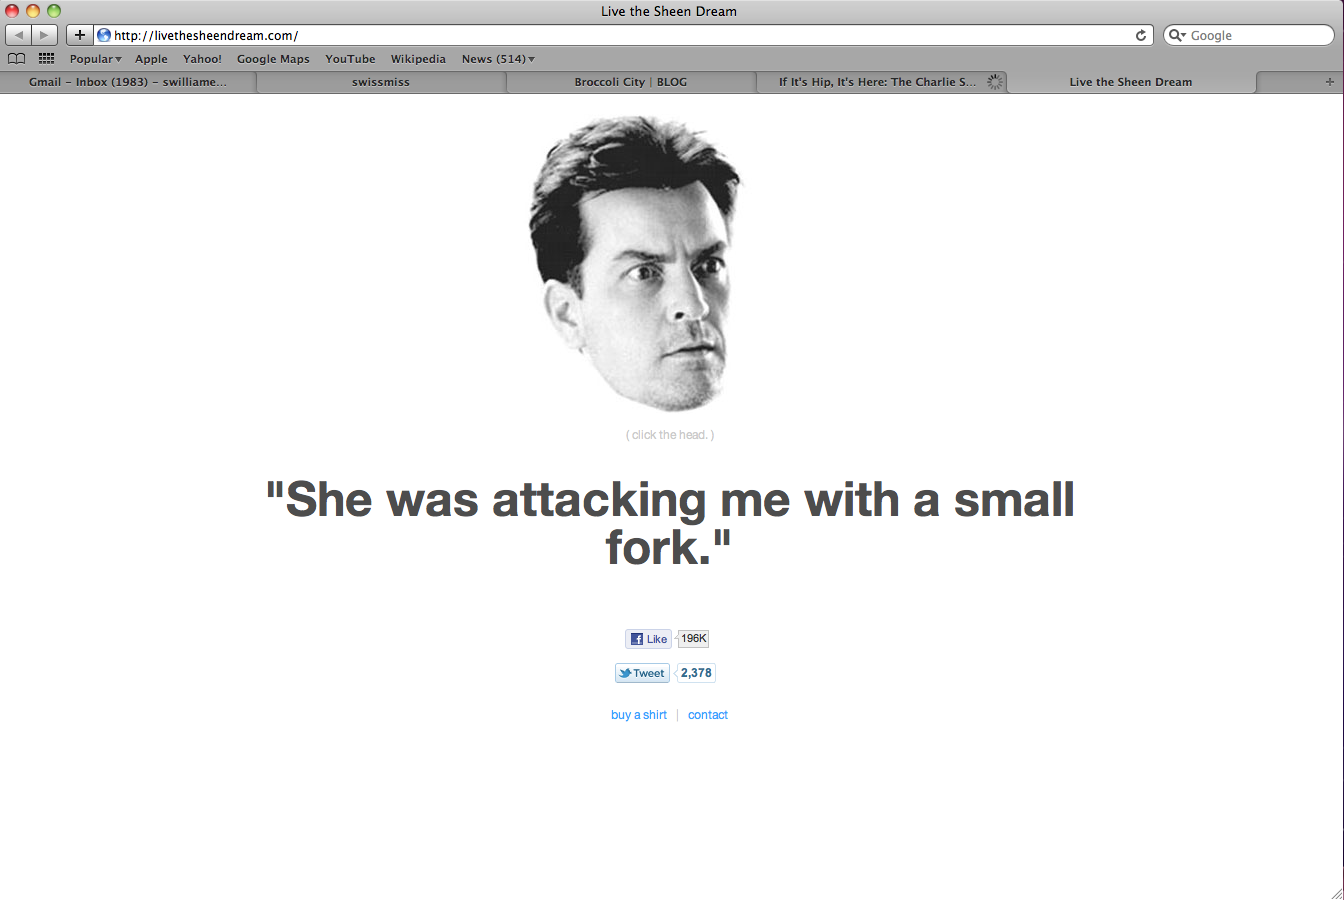 Random Quote Generator Prostituted Thoughts. The Charlie Sheen Random Quote Generator.